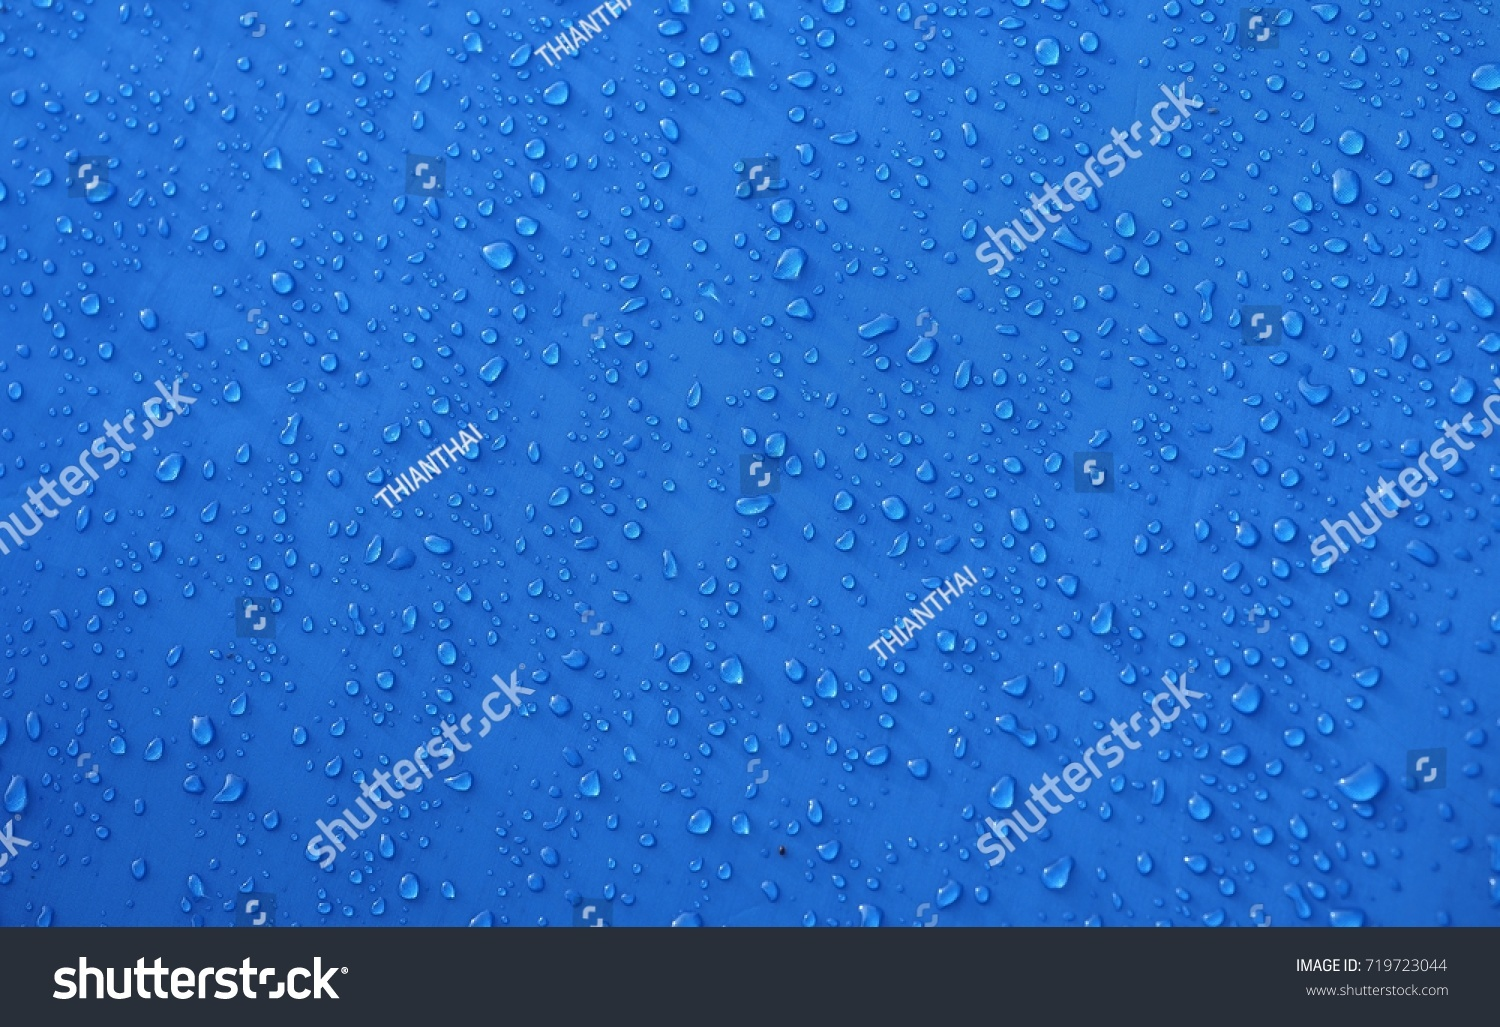 Dew drop on blue tent background.  sc 1 st  Shutterstock & Dew Drop On Blue Tent Background Stock Photo 719723044 - Shutterstock